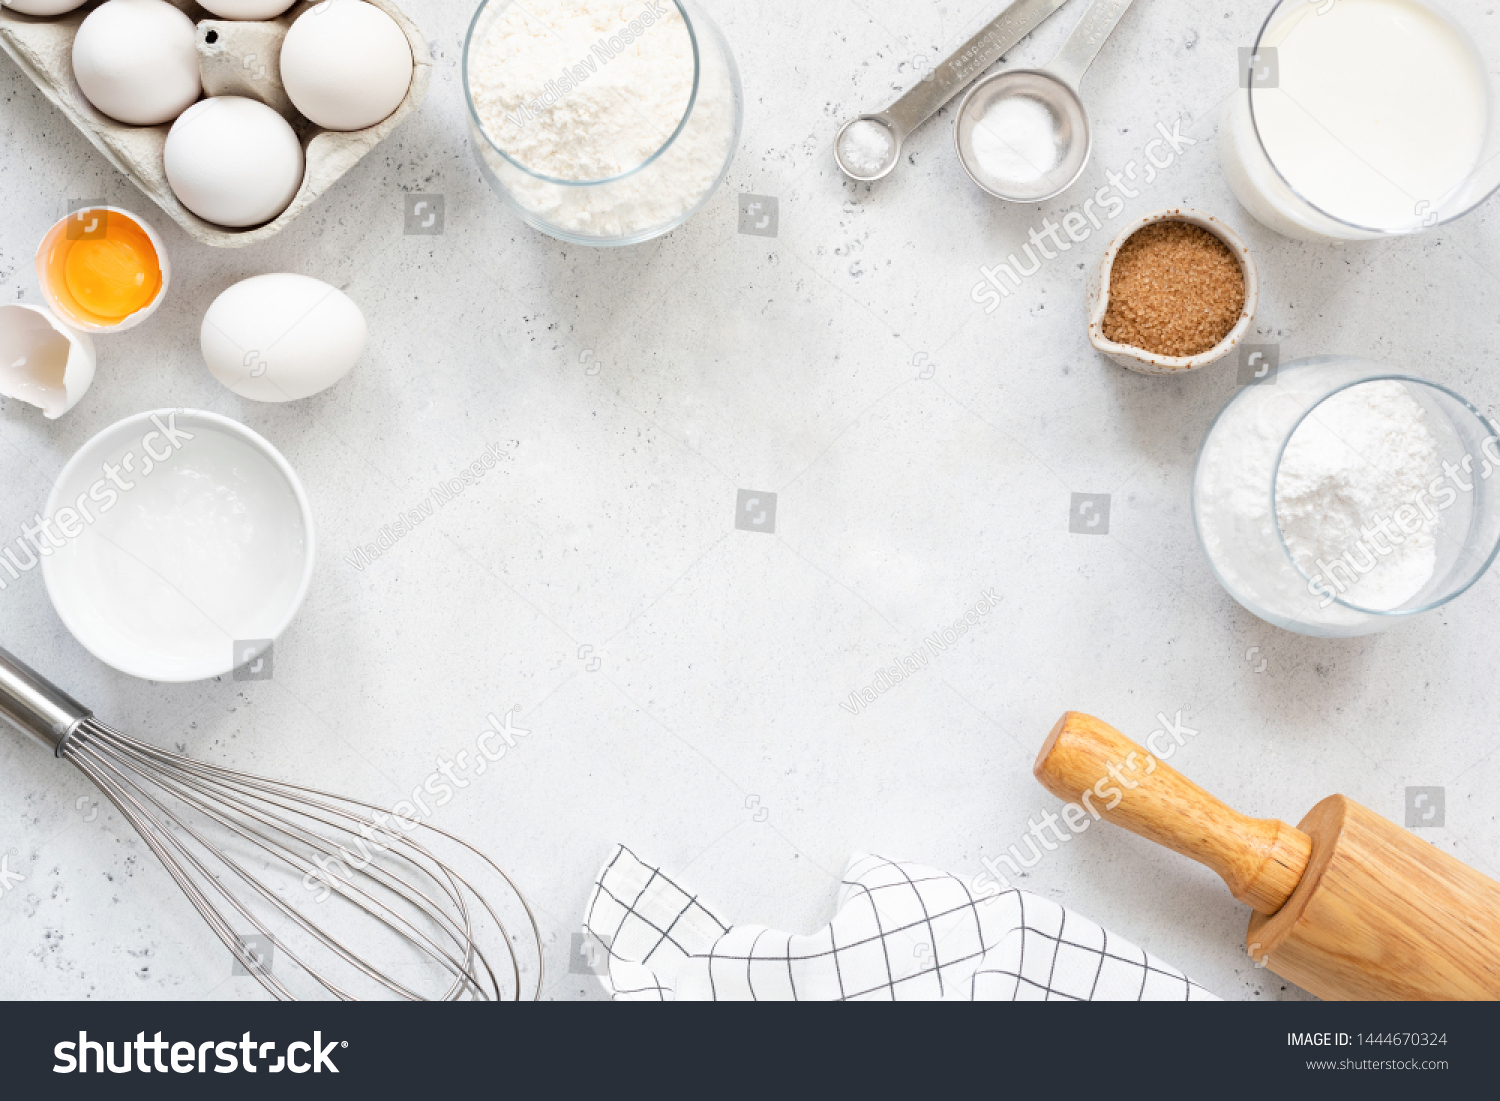 Frame of baking and cooking bread pastry or cake ingredients, flour sugar milk eggs and coconut butter on bright grey background with copy space for text, flat lay #1444670324